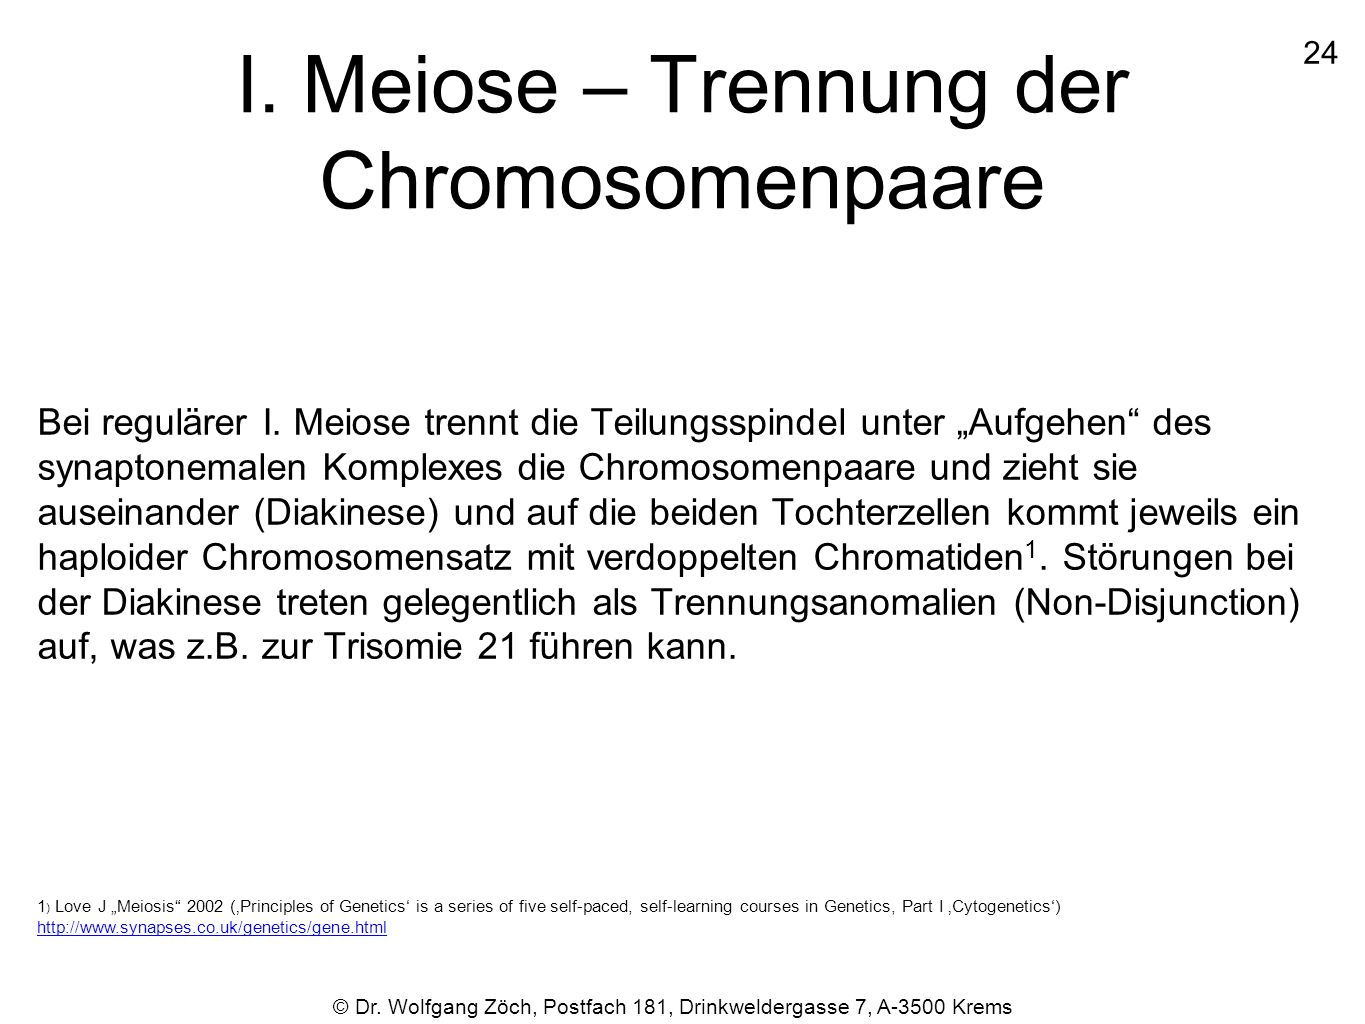 I. Meiose – Trennung der Chromosomenpaare